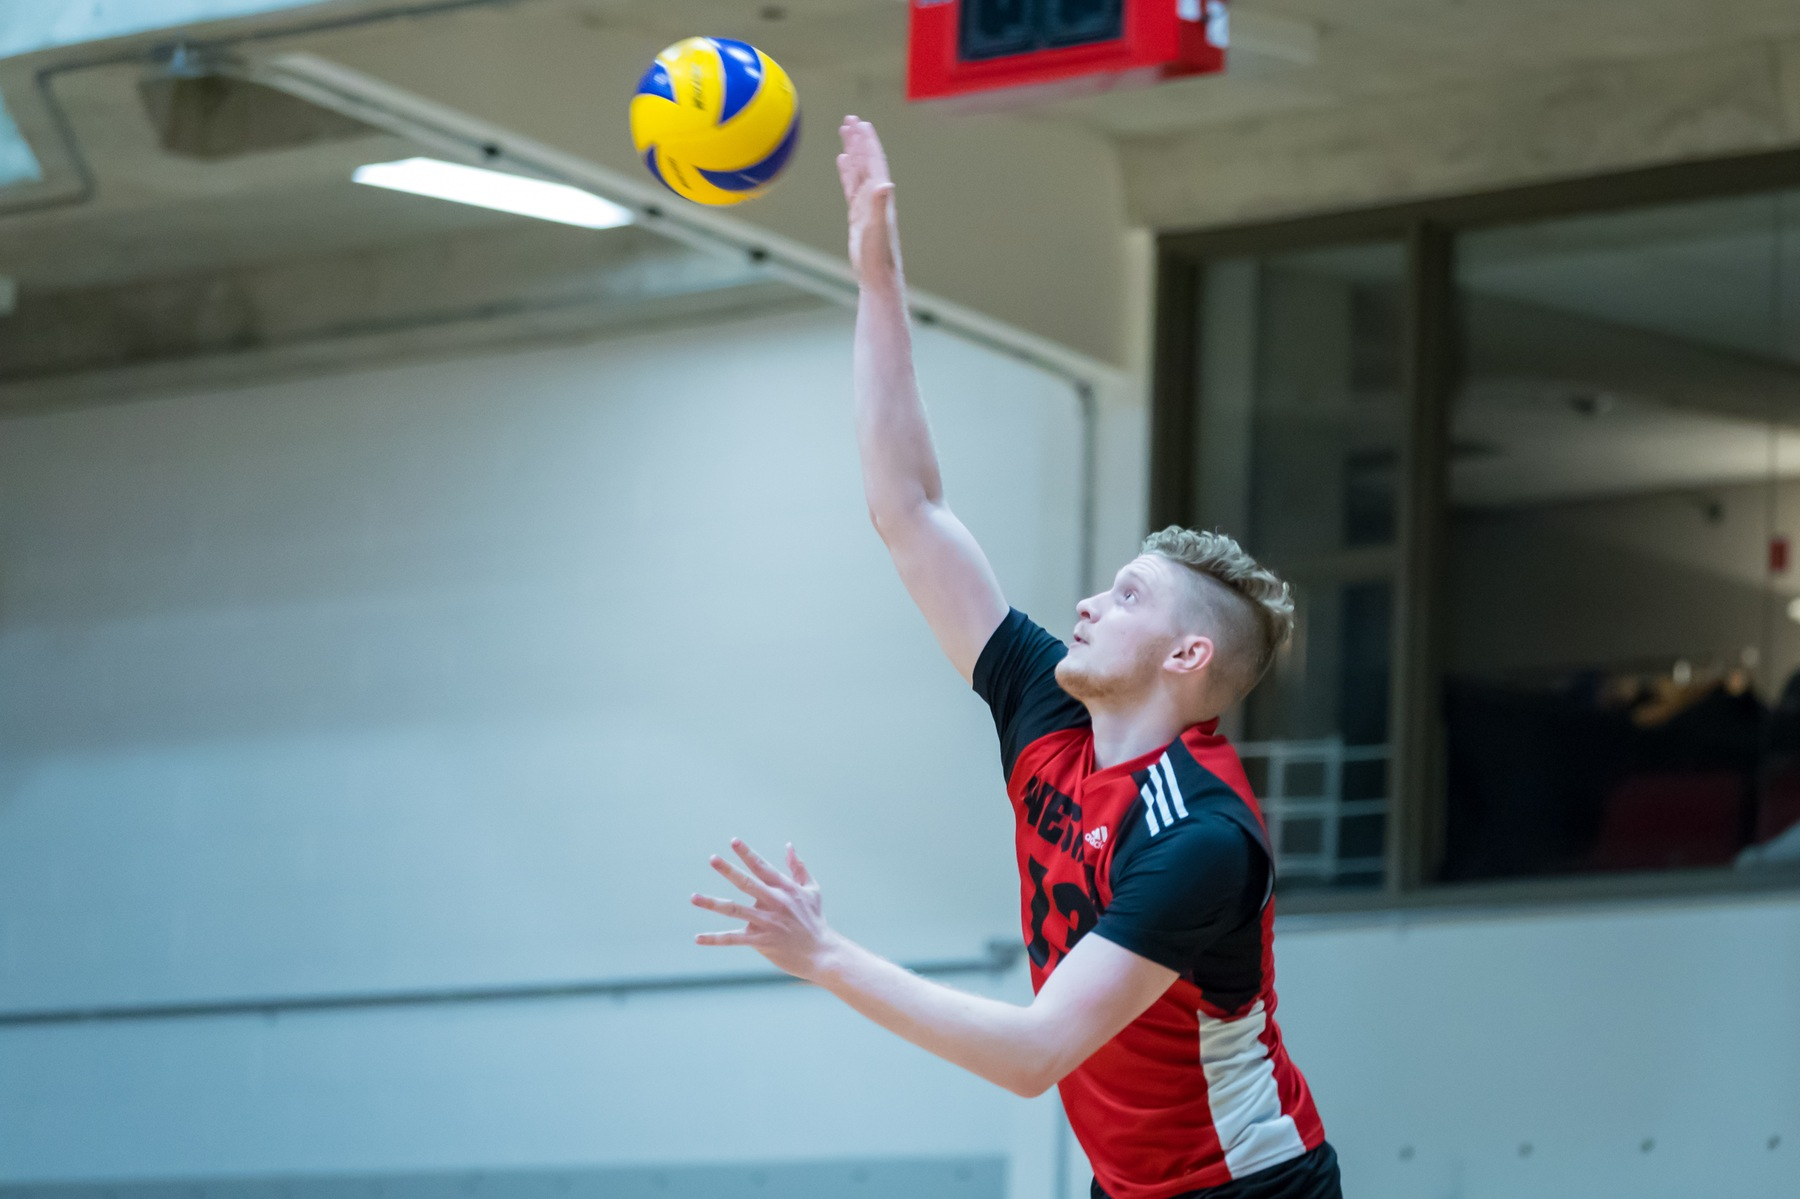 Ethan Duncan led the Wesmen with eight kills and hit .400 for the match in a win over the Dalhousie Tigers Oct. 9, 2018. (Kelly Morton/Wesmen Athletics file)